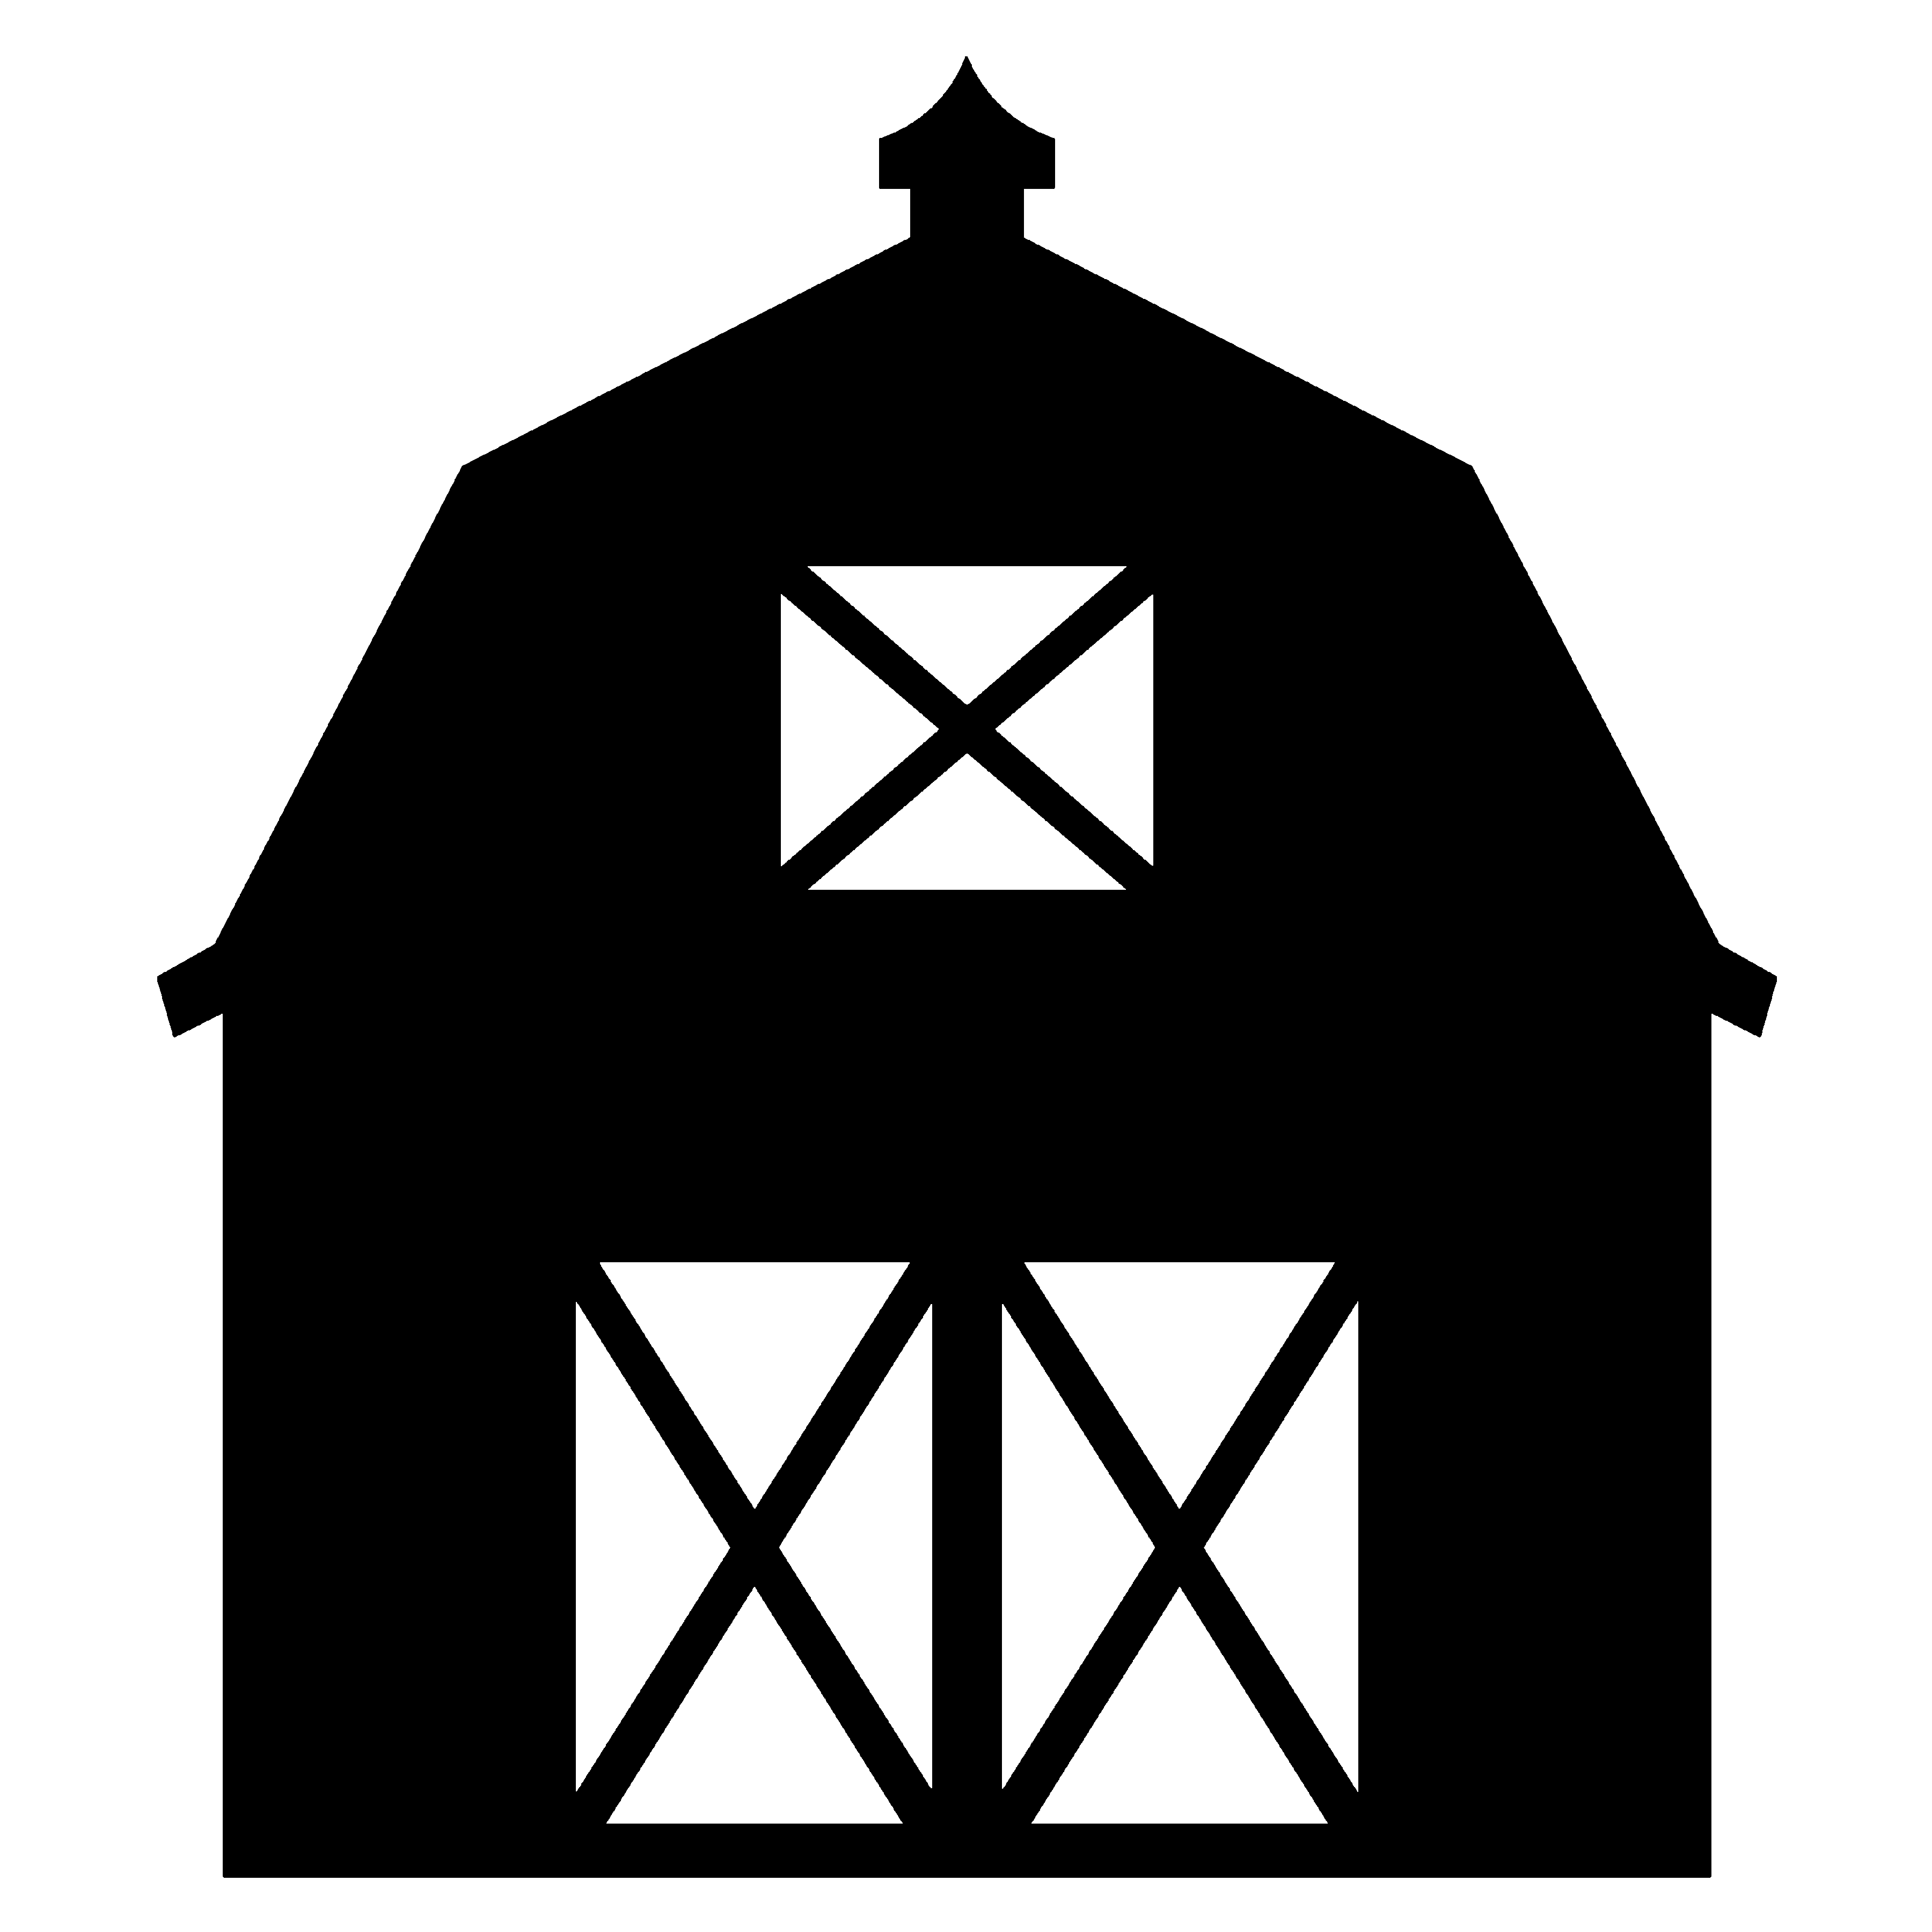 Wide barn clipart image freeuse stock Barn - Baby block inspiration for an upcoming baby shower ... image freeuse stock